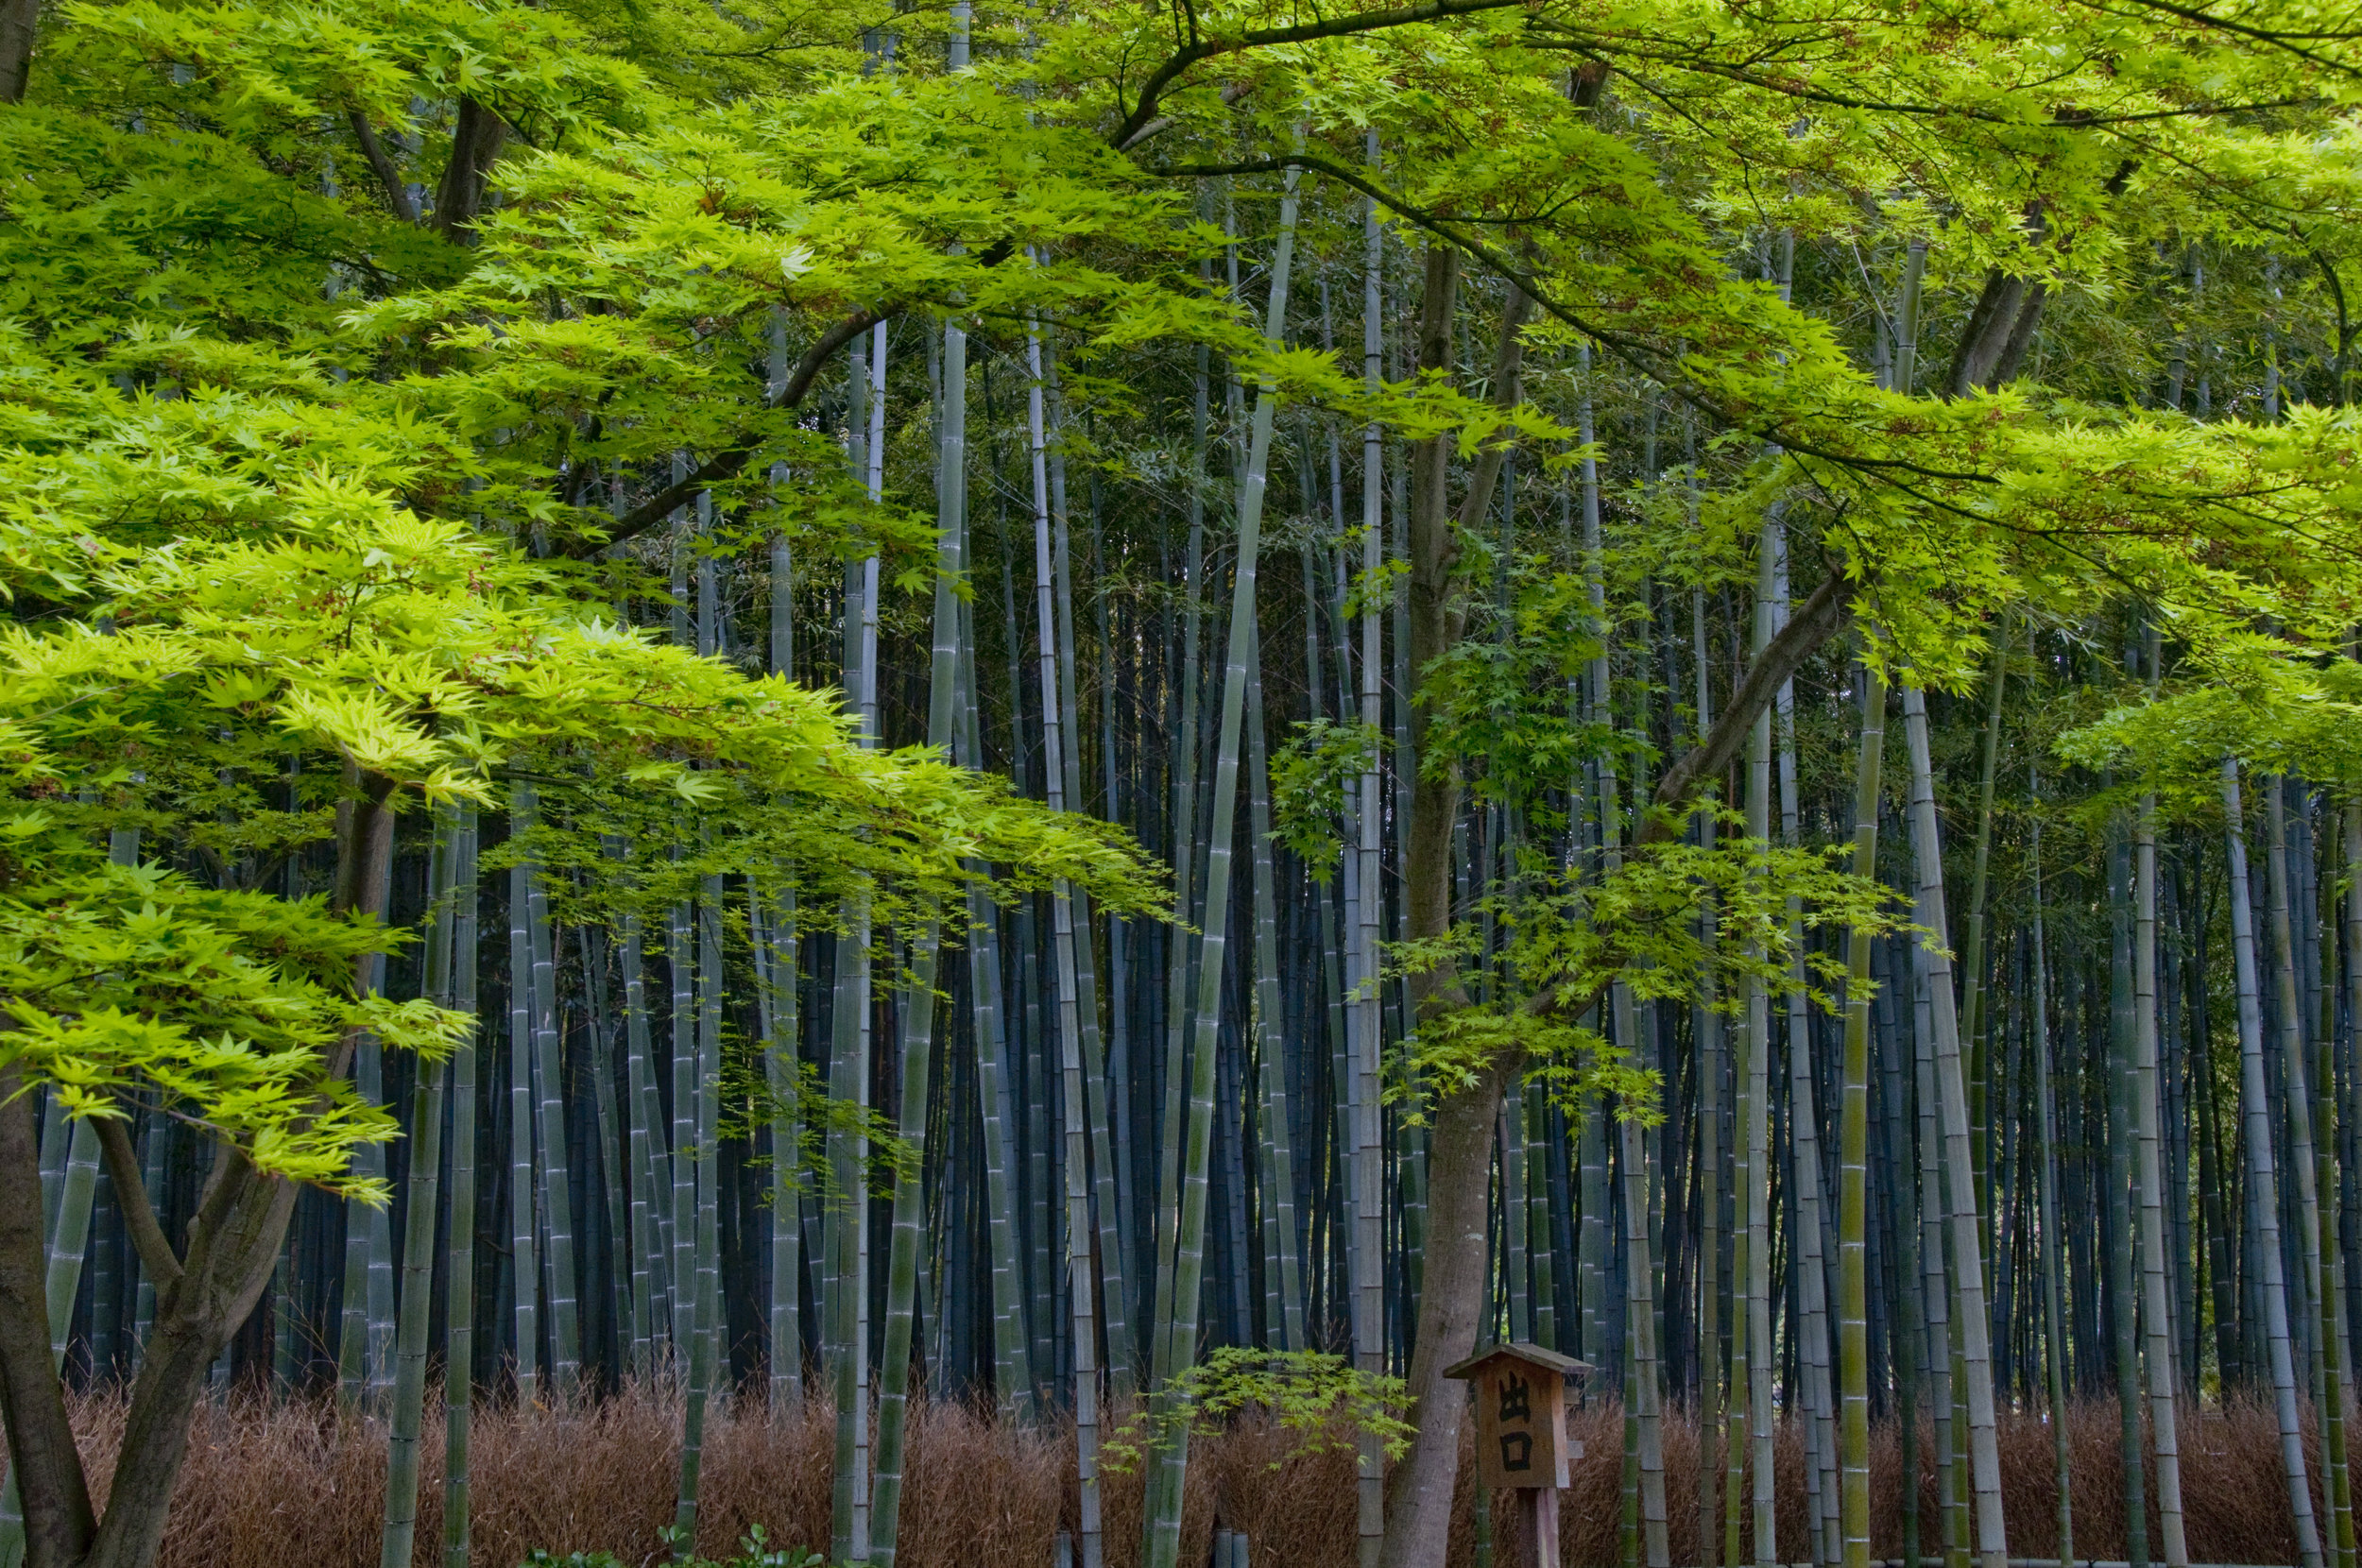 Bamboo Forests of Kyoto, Japan